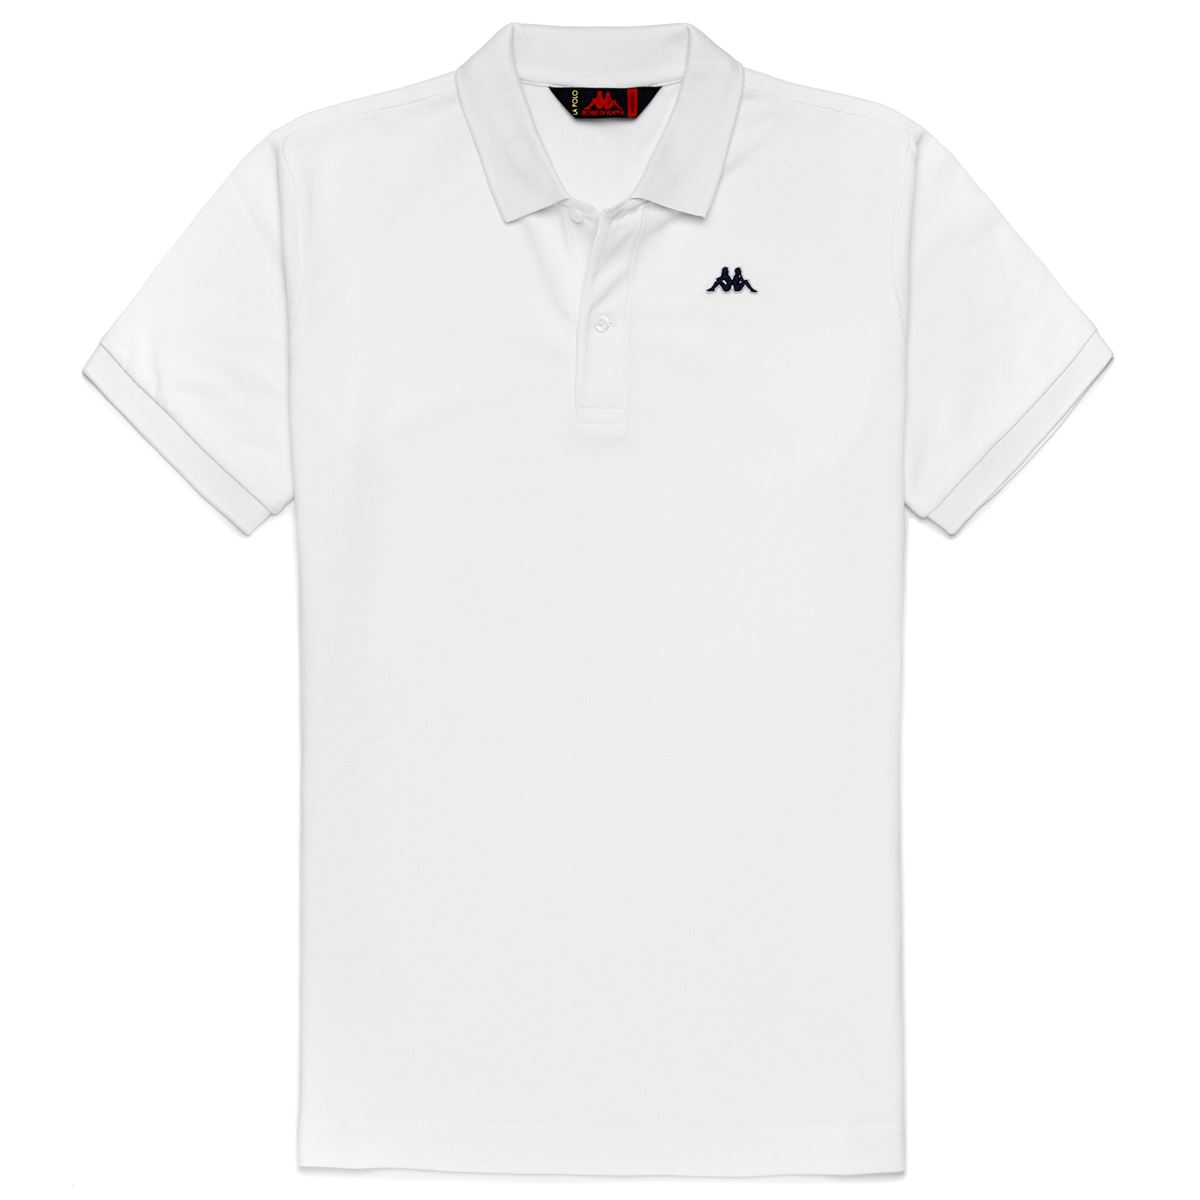 Robe di Kappa LA POLO ROBE DI KAPPA AARAU Junior Boy Polo